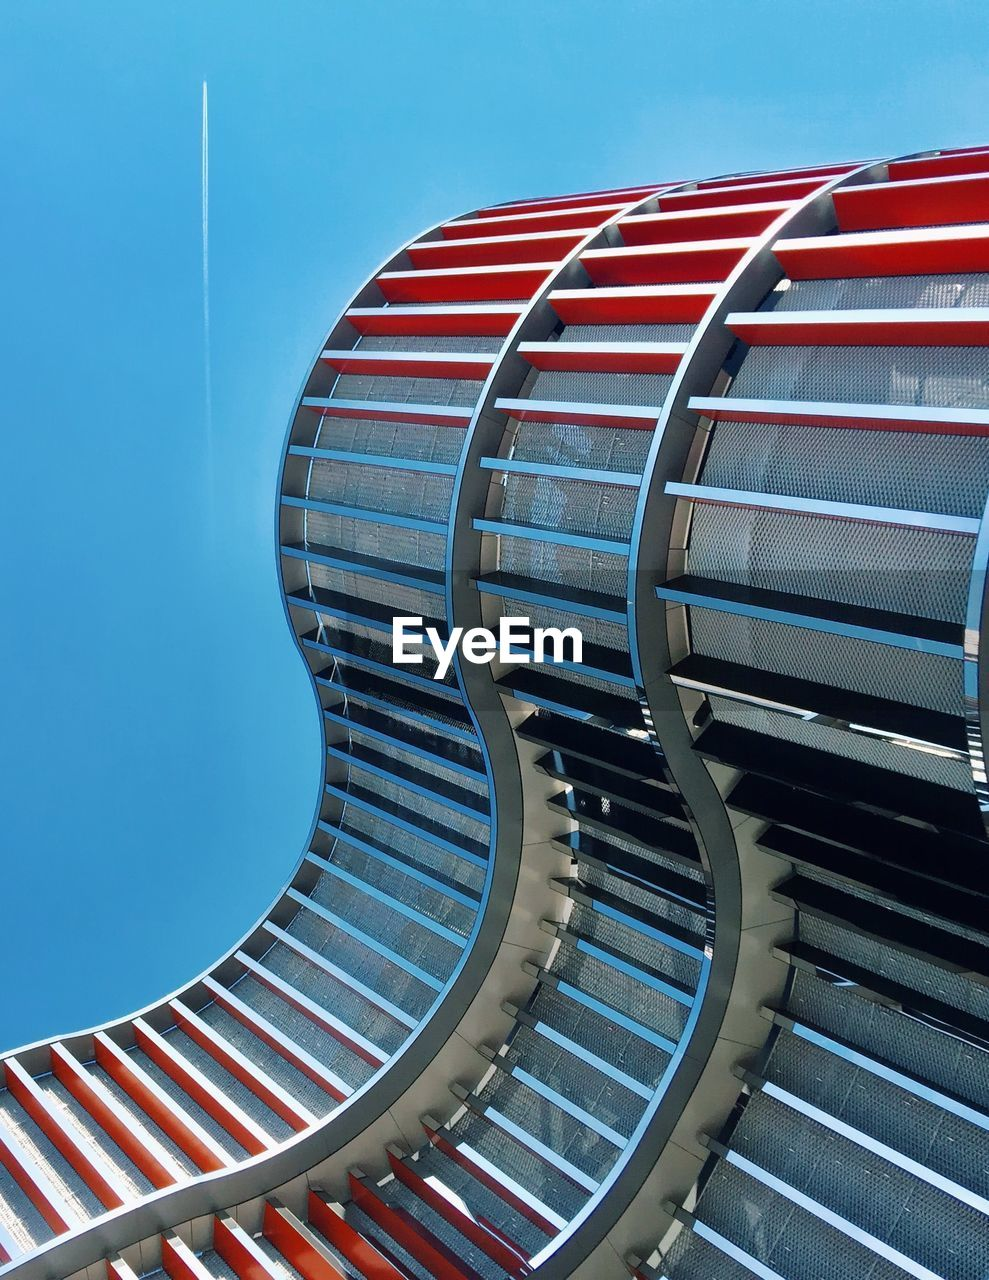 blue, metal, sky, pattern, red, no people, architecture, technology, industry, clear sky, built structure, day, nature, machinery, curve, modern, close-up, staircase, pipe - tube, striped, steel, alloy, silver colored, turquoise colored